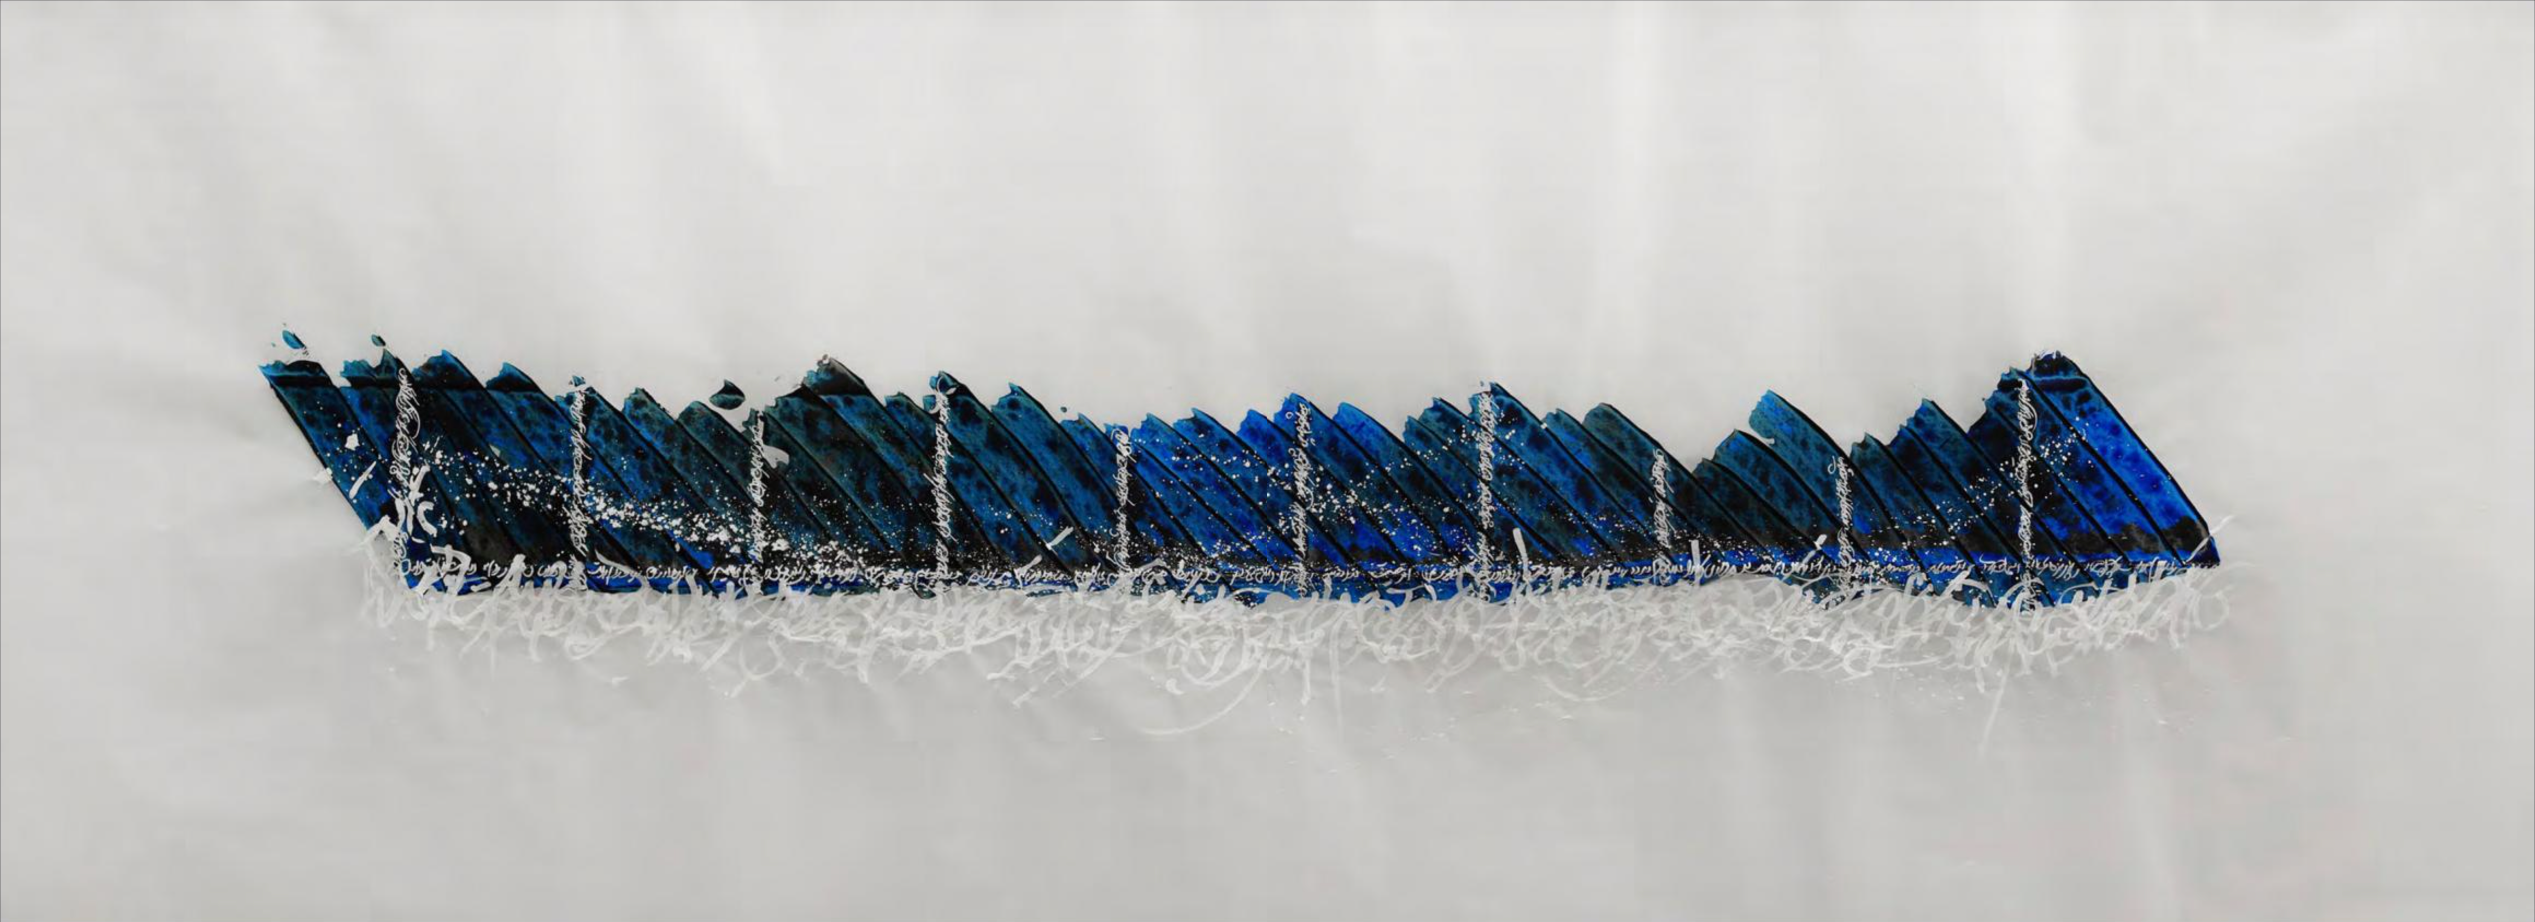 Hanieh Delecroix and Keyvan Saber, Between Us, Acrylic on tracing paper, 110 x 300 cm, 2013